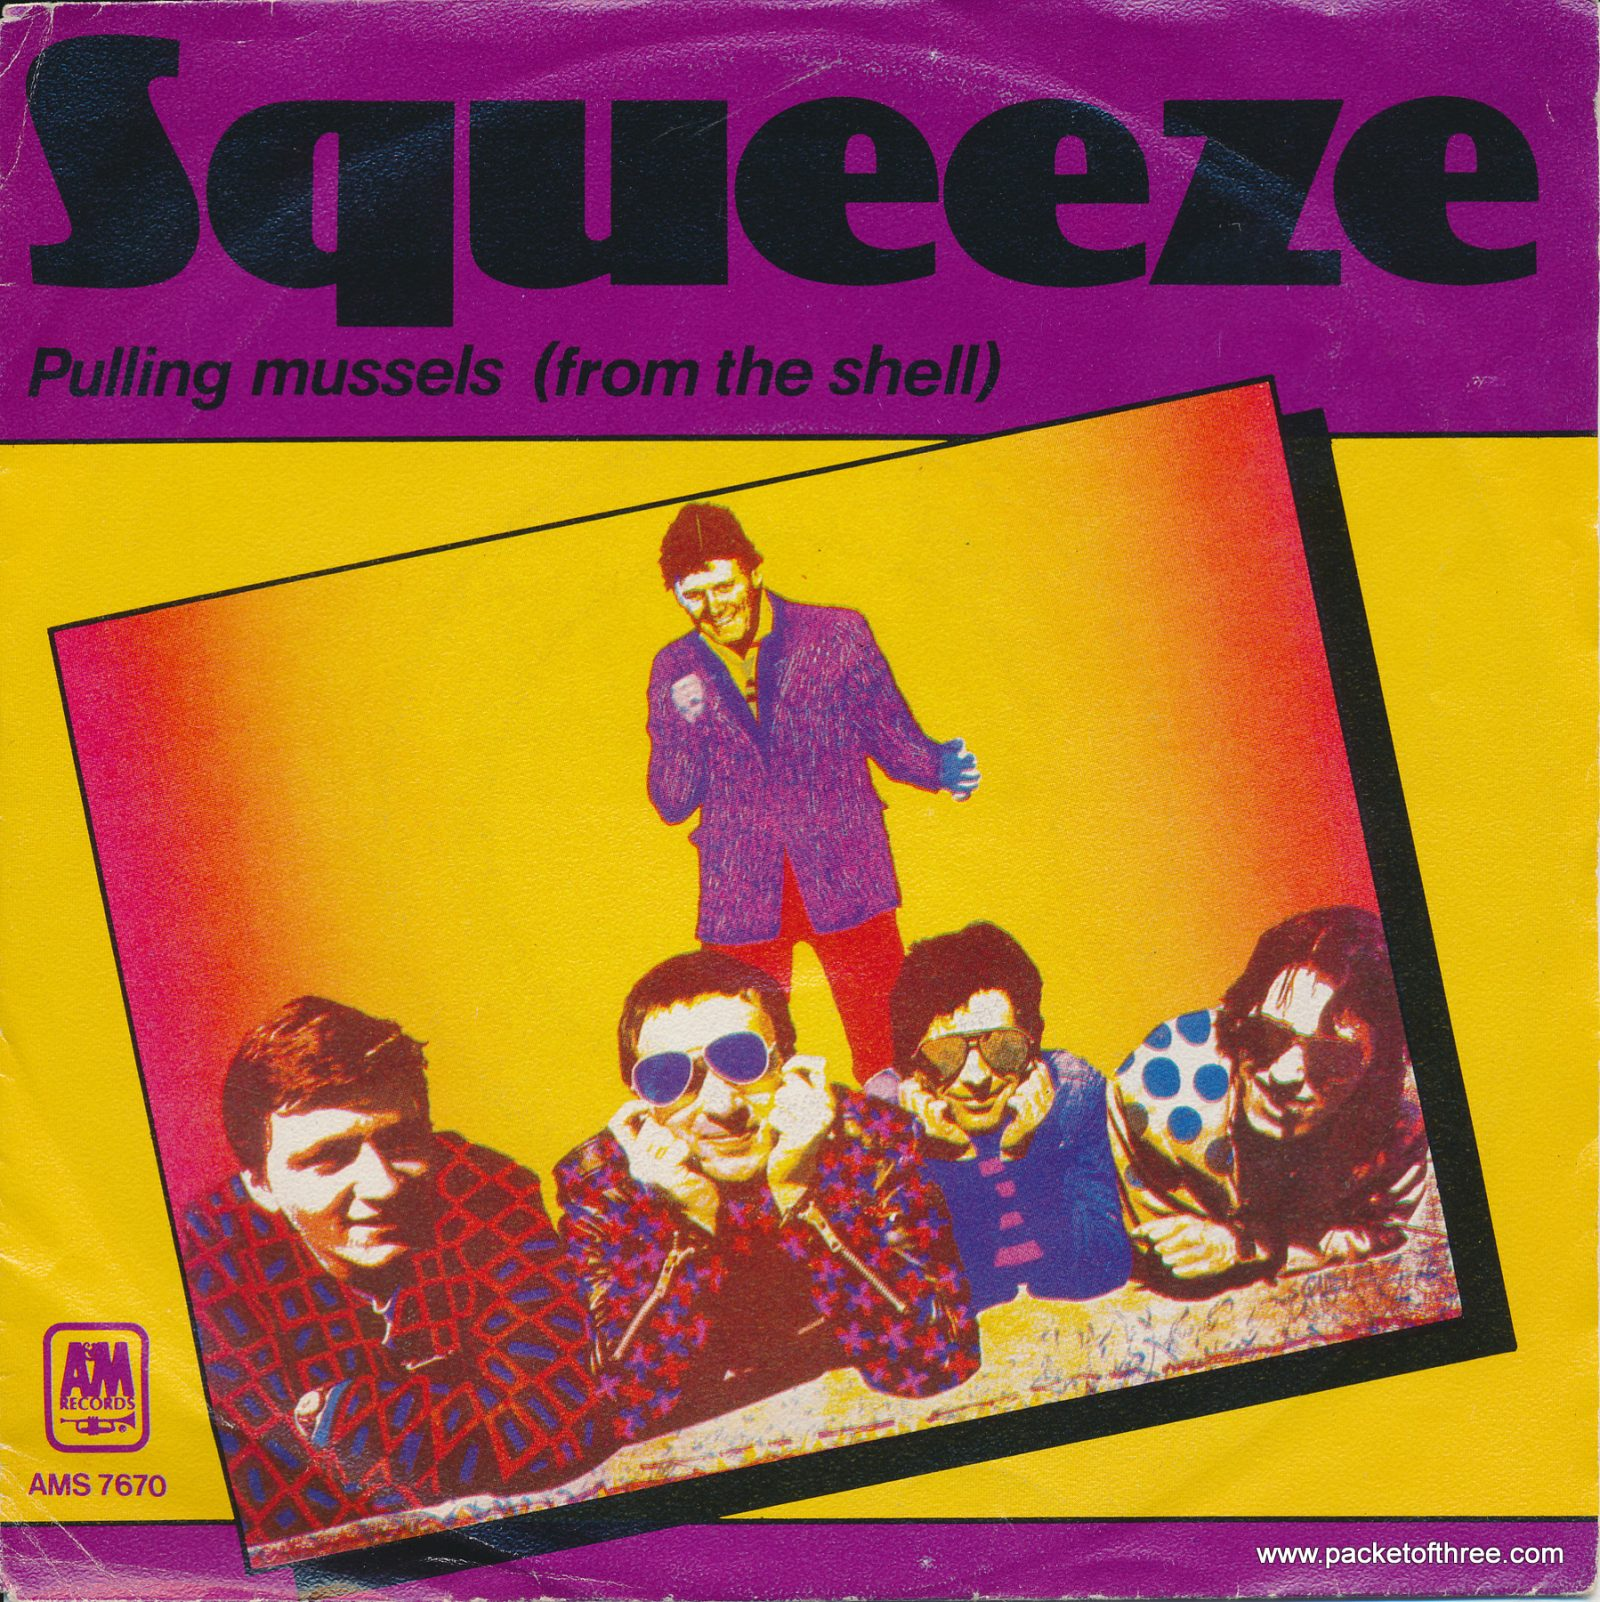 "Pulling Mussels (From the Shell) - Netherlands - 7"" - alternate picture sleeve"